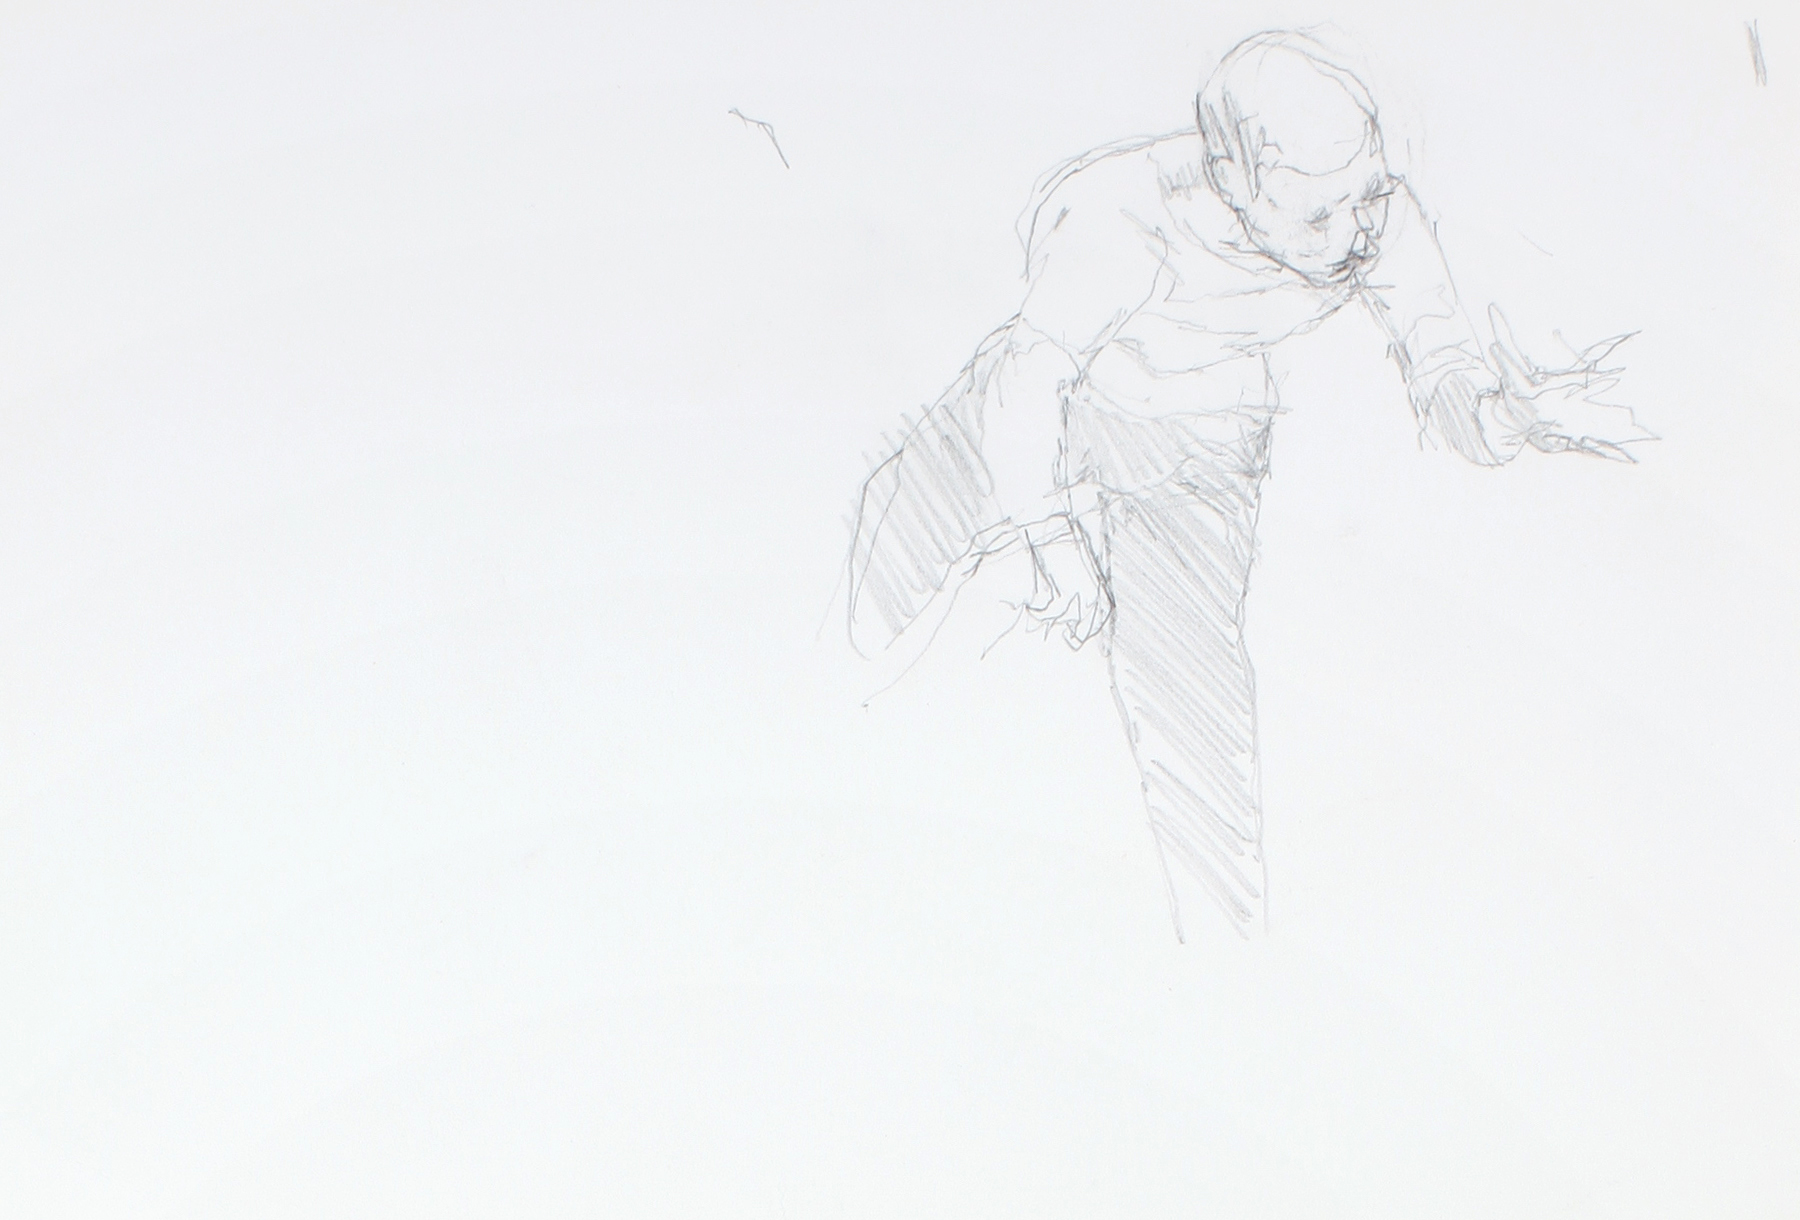 1989_Study_of_Man_on_Bicycle_pencil_on_paper_11x15in_WPF625.jpg